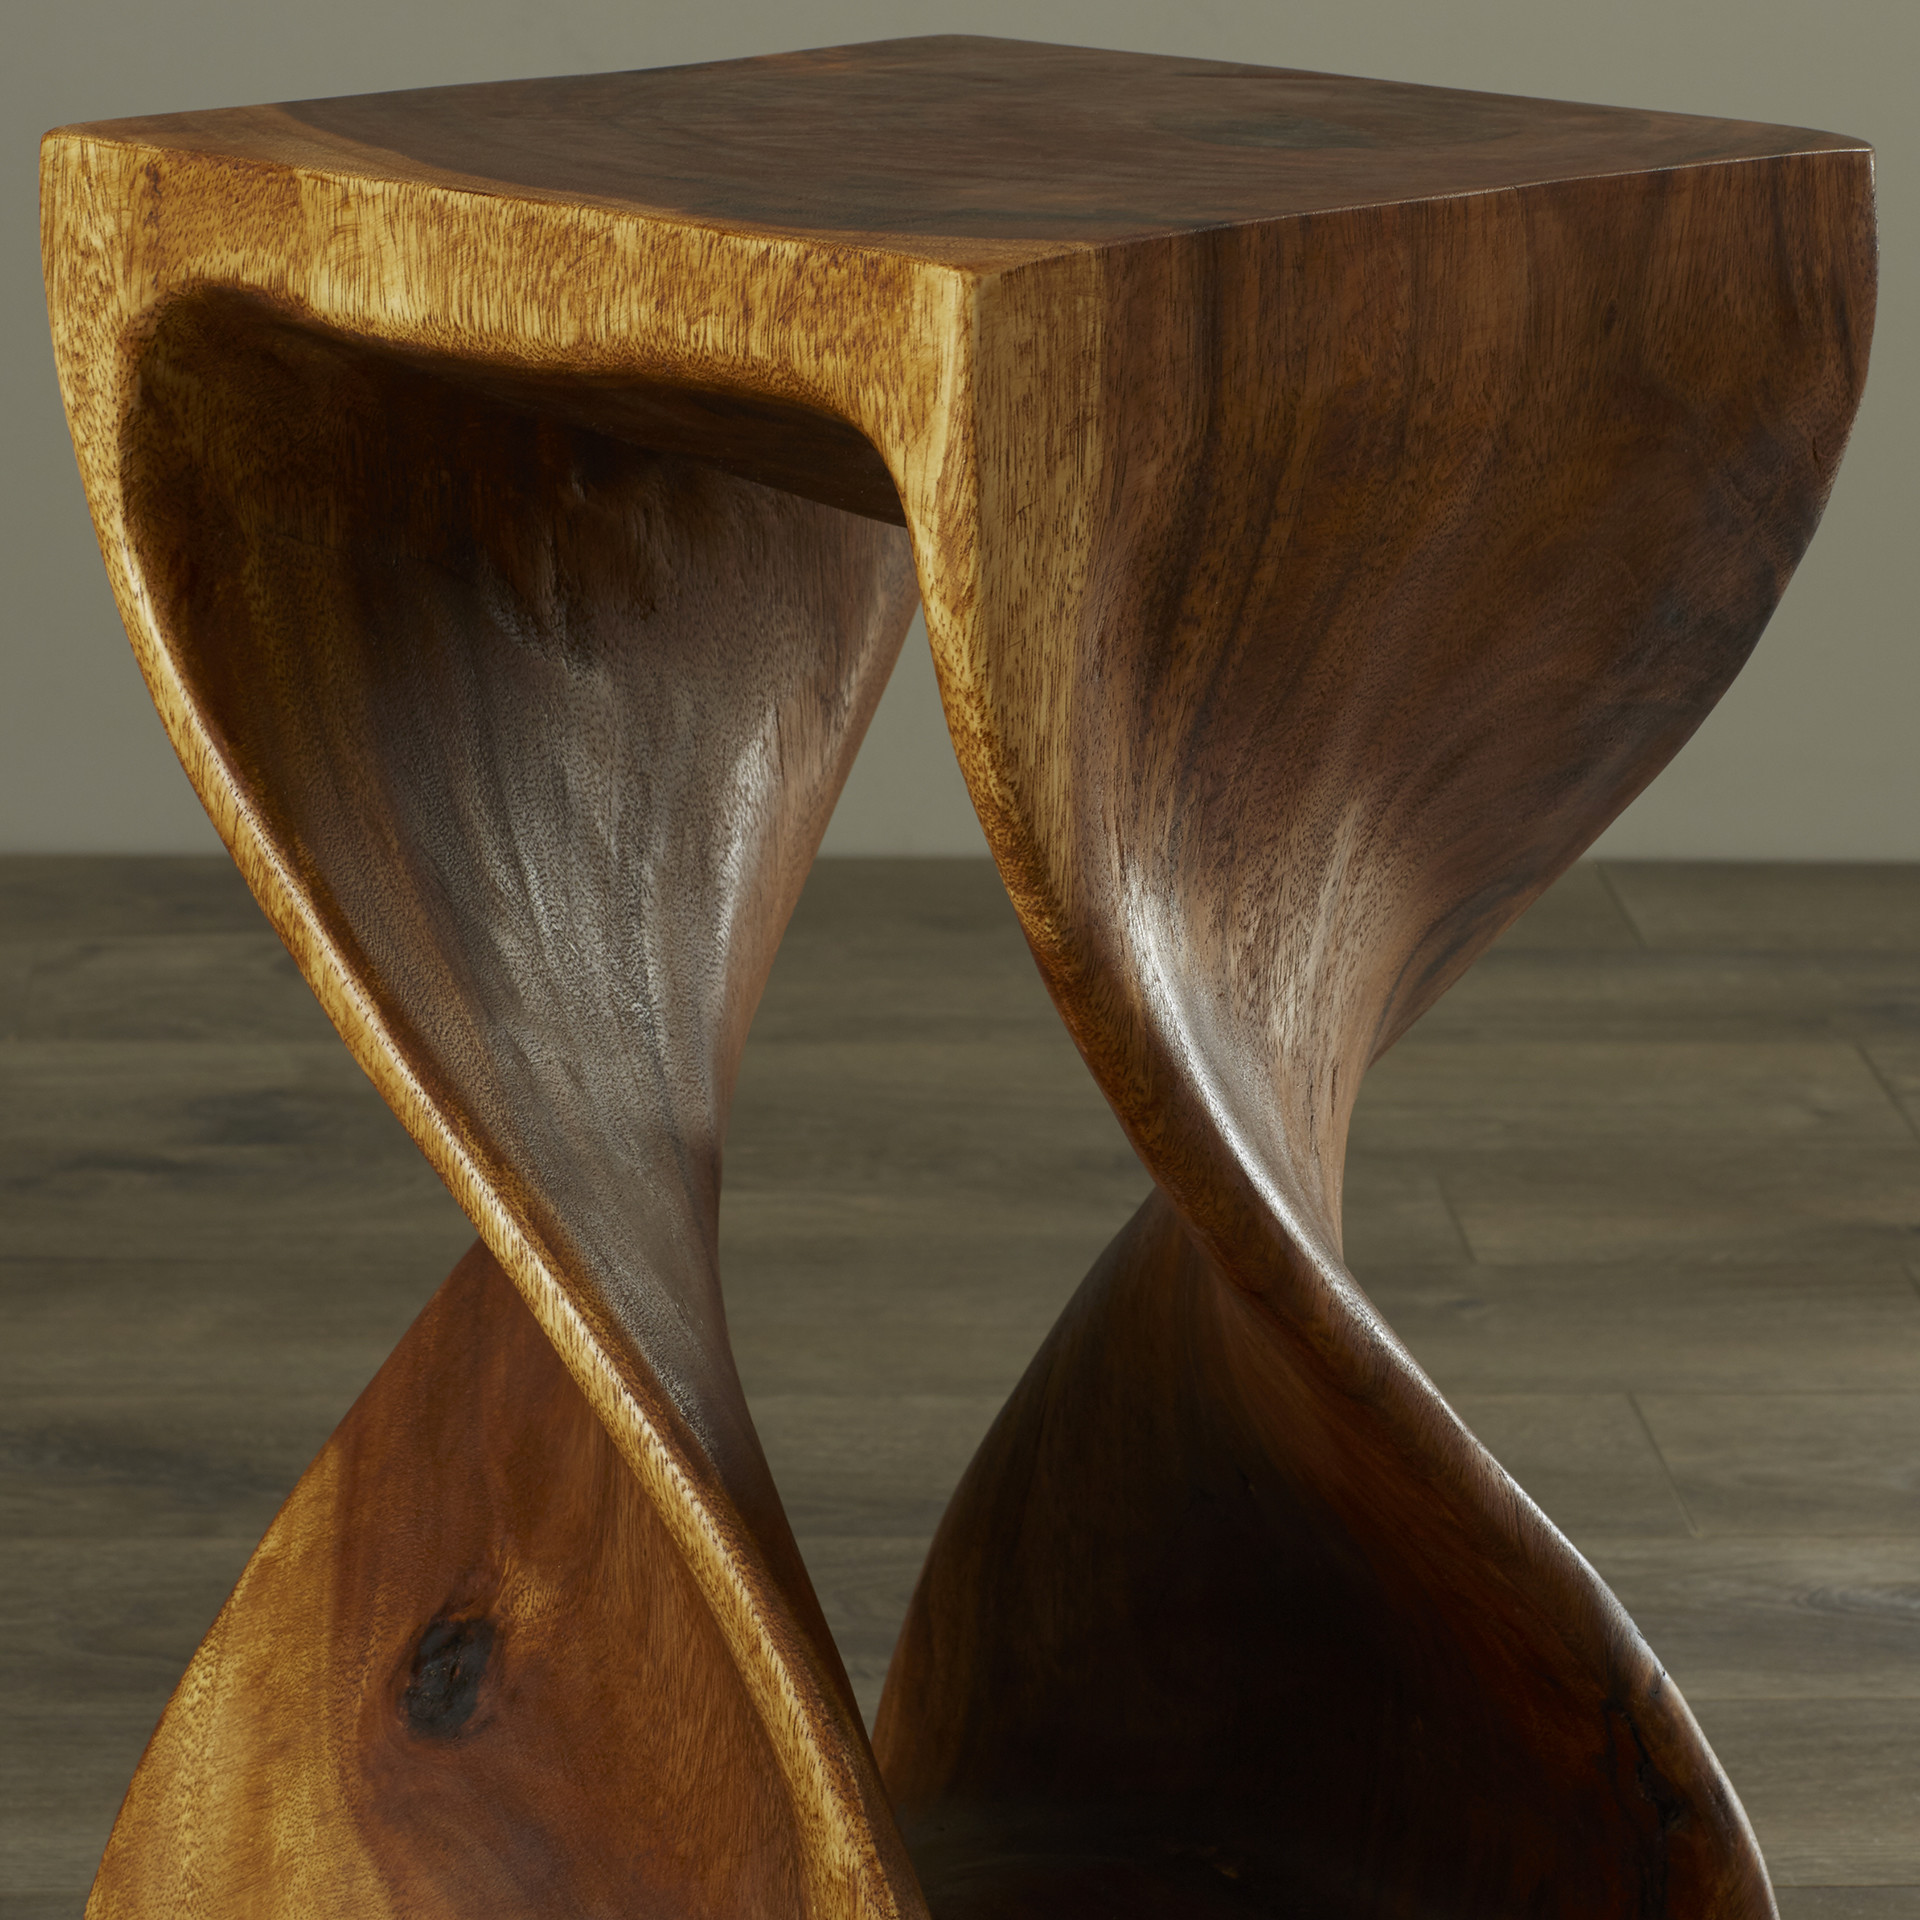 Twist End Table Wooden Twist Small Side Table Stool Lamp Plant Stand